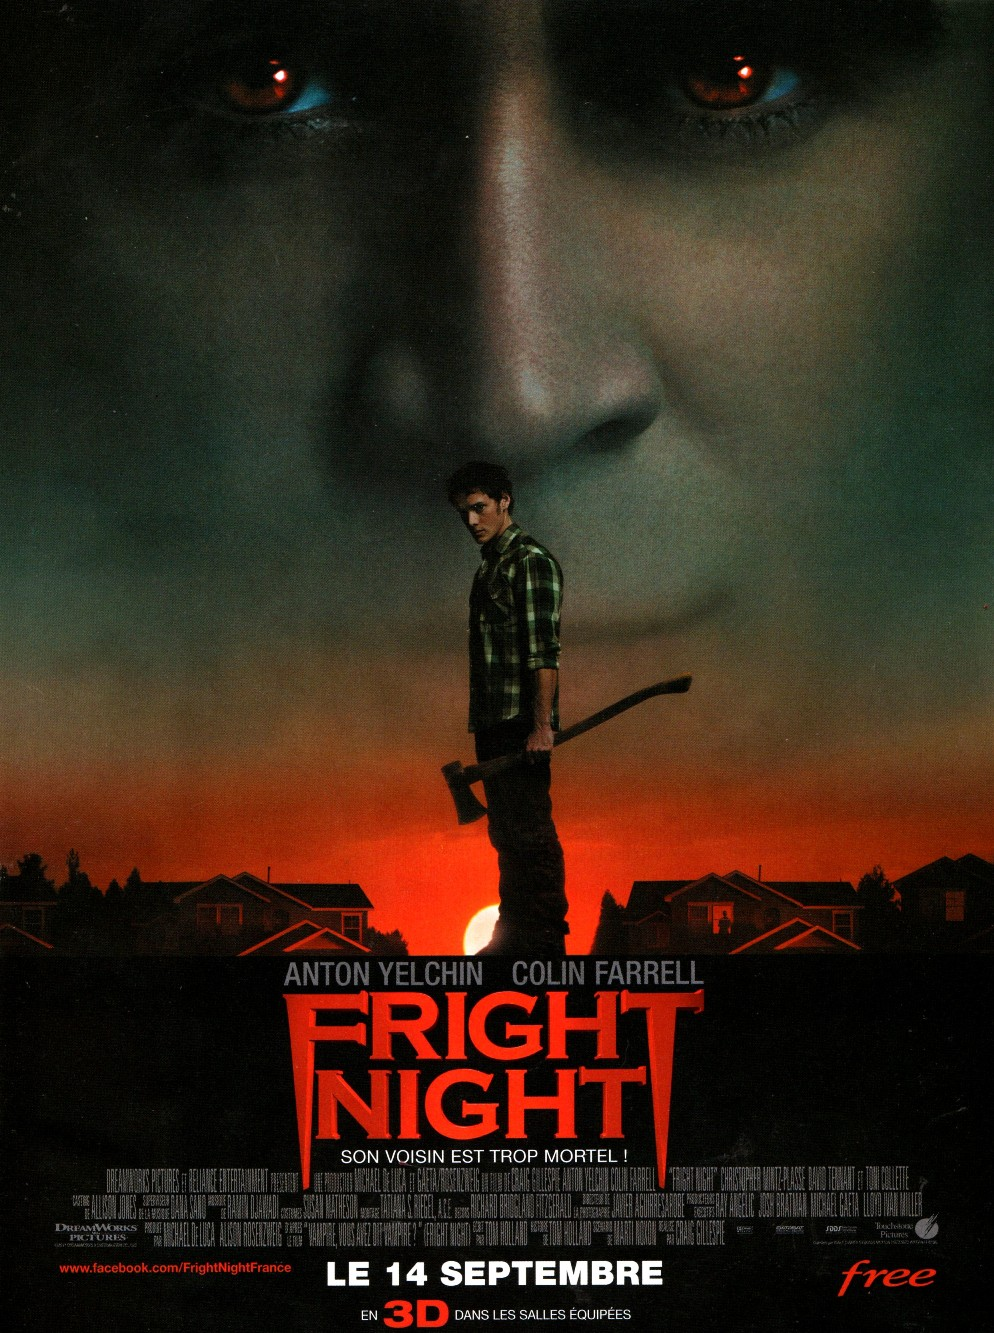 affiche du film Fright Night